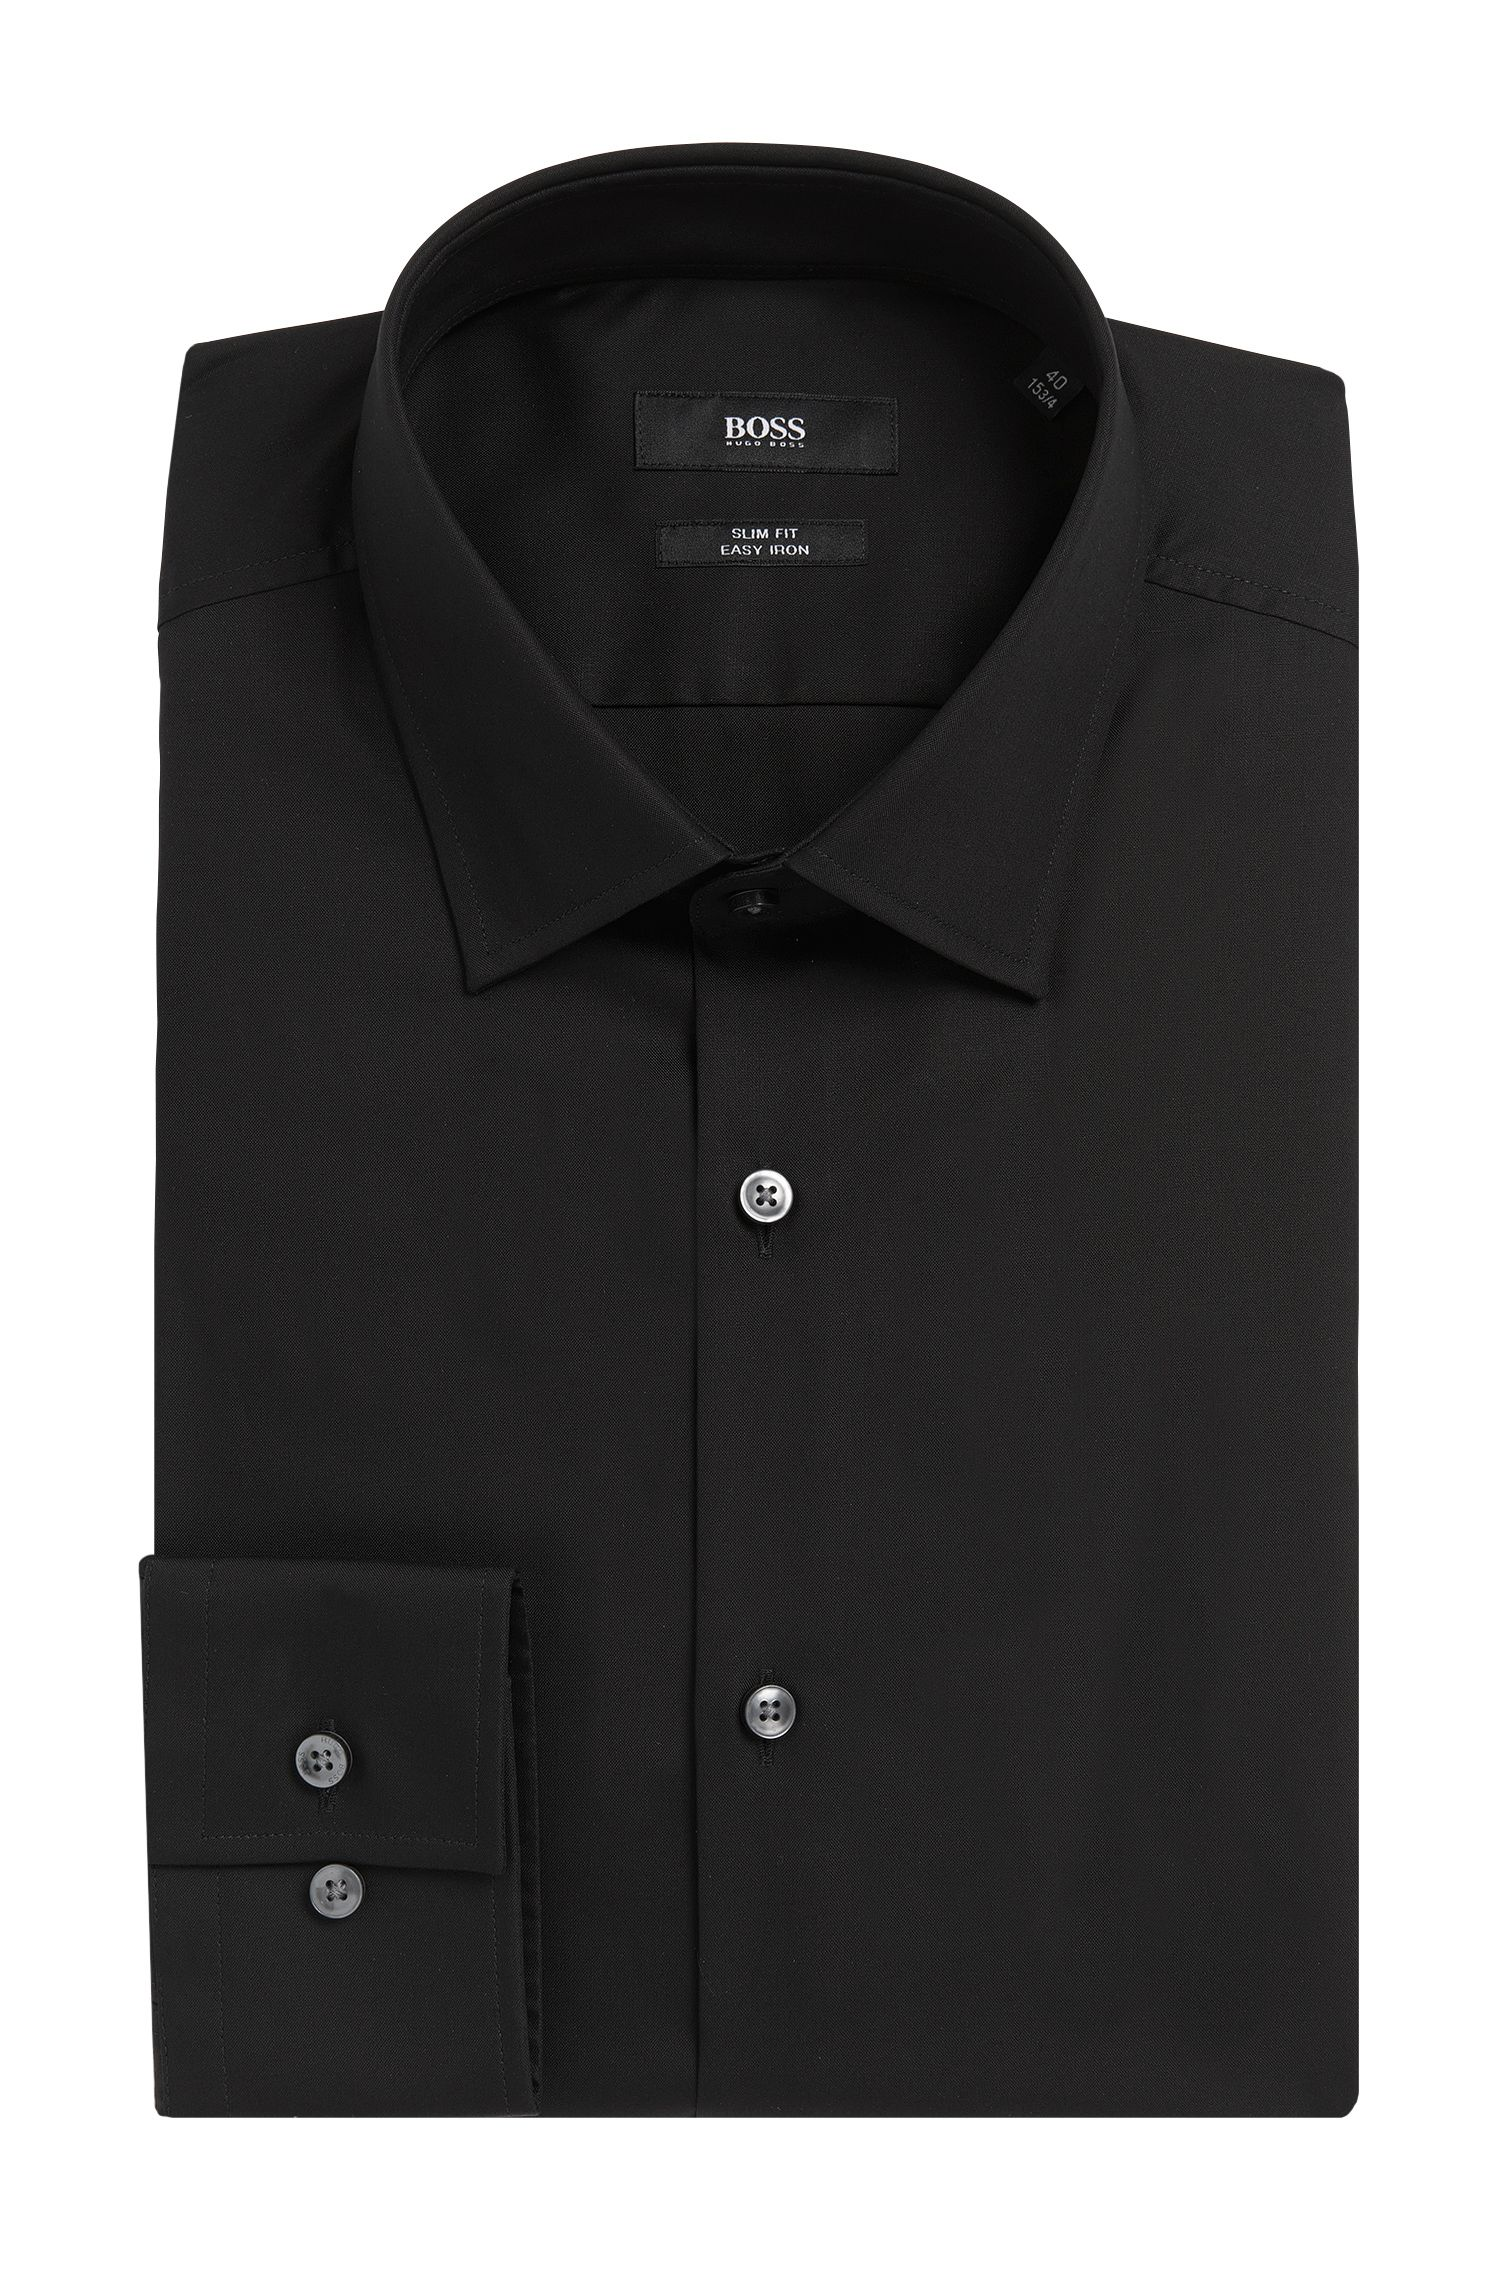 Easy-Iron Italian Cotton Dress Shirt, Slim Fit | Jenno